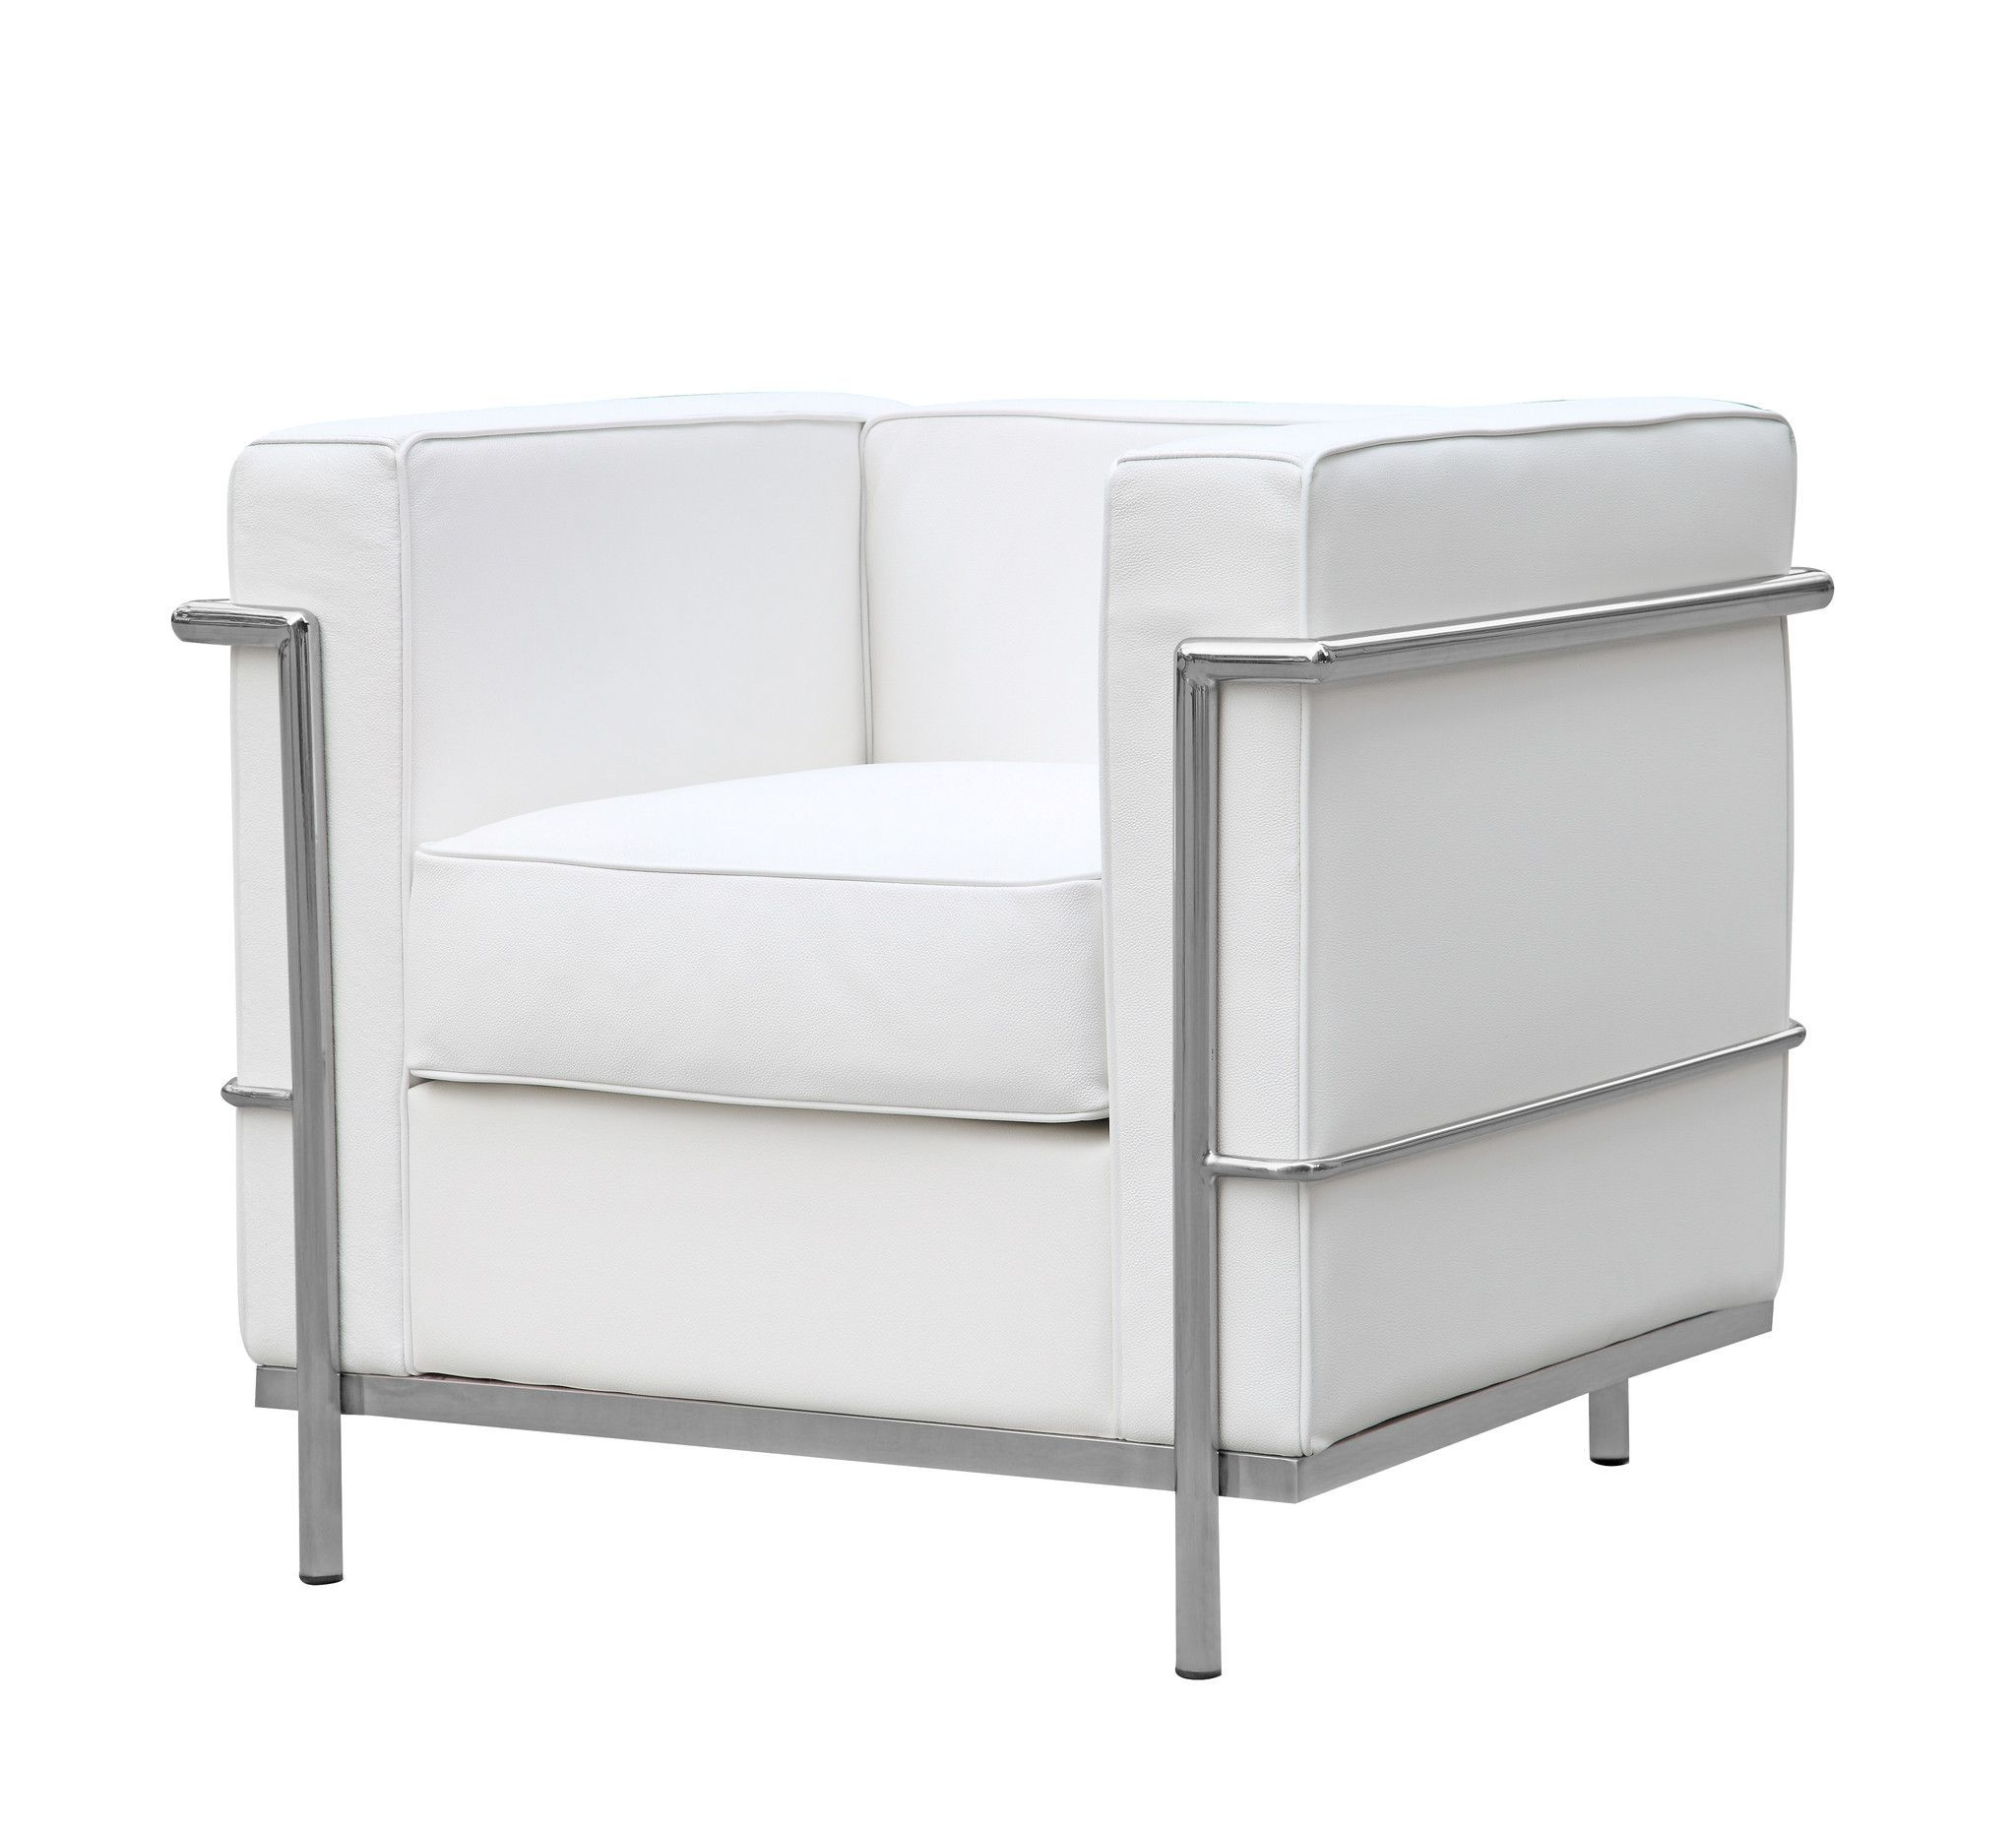 Cube le corbusier lc2 style petit chair white leather products pinterest - Le corbusier design style ...